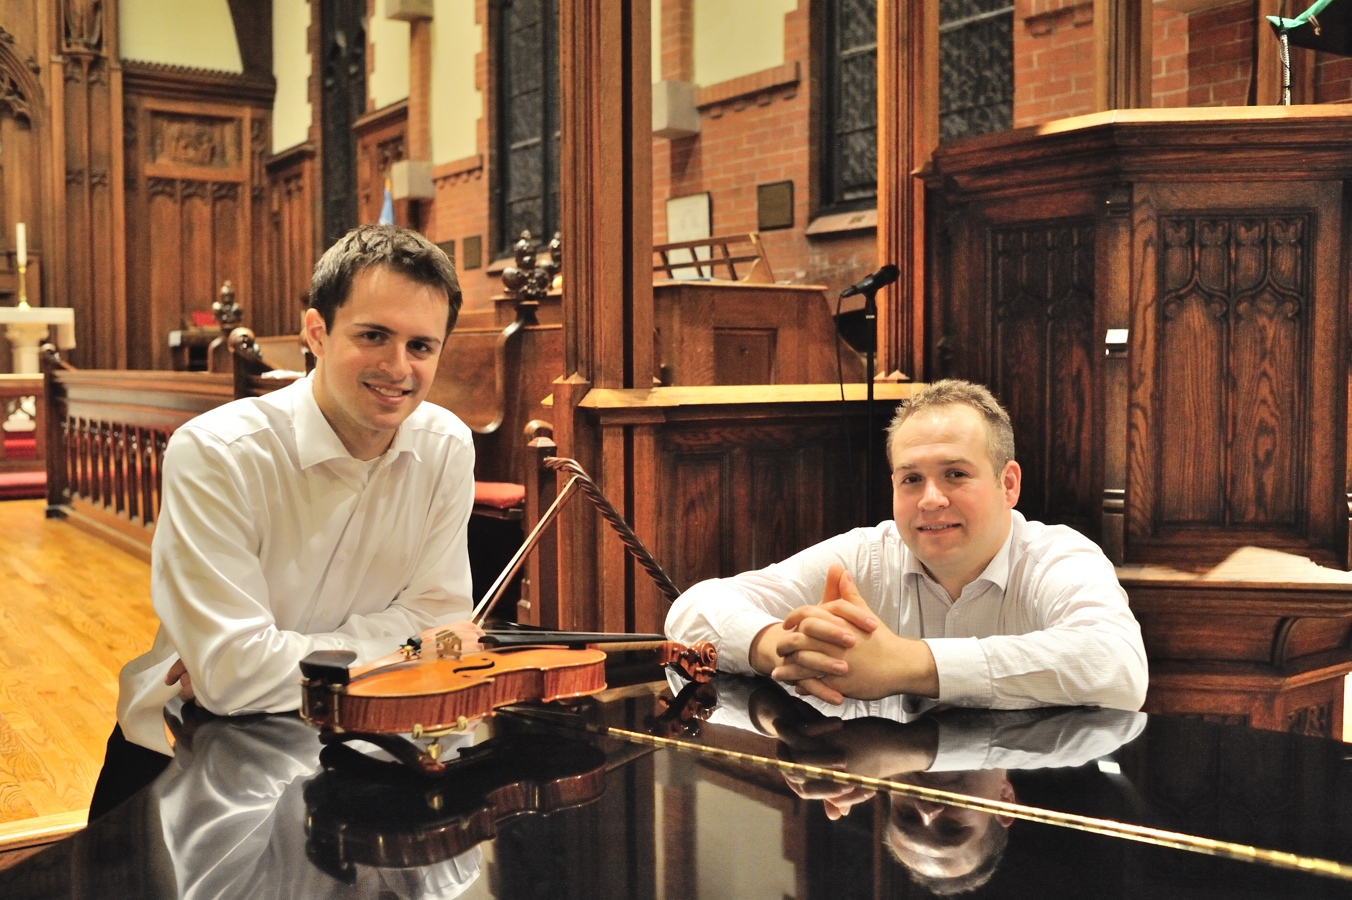 Geoffrey Herd, violin and Zahari Metchkov, piano (Photo Courtesy Zhari Metchov)